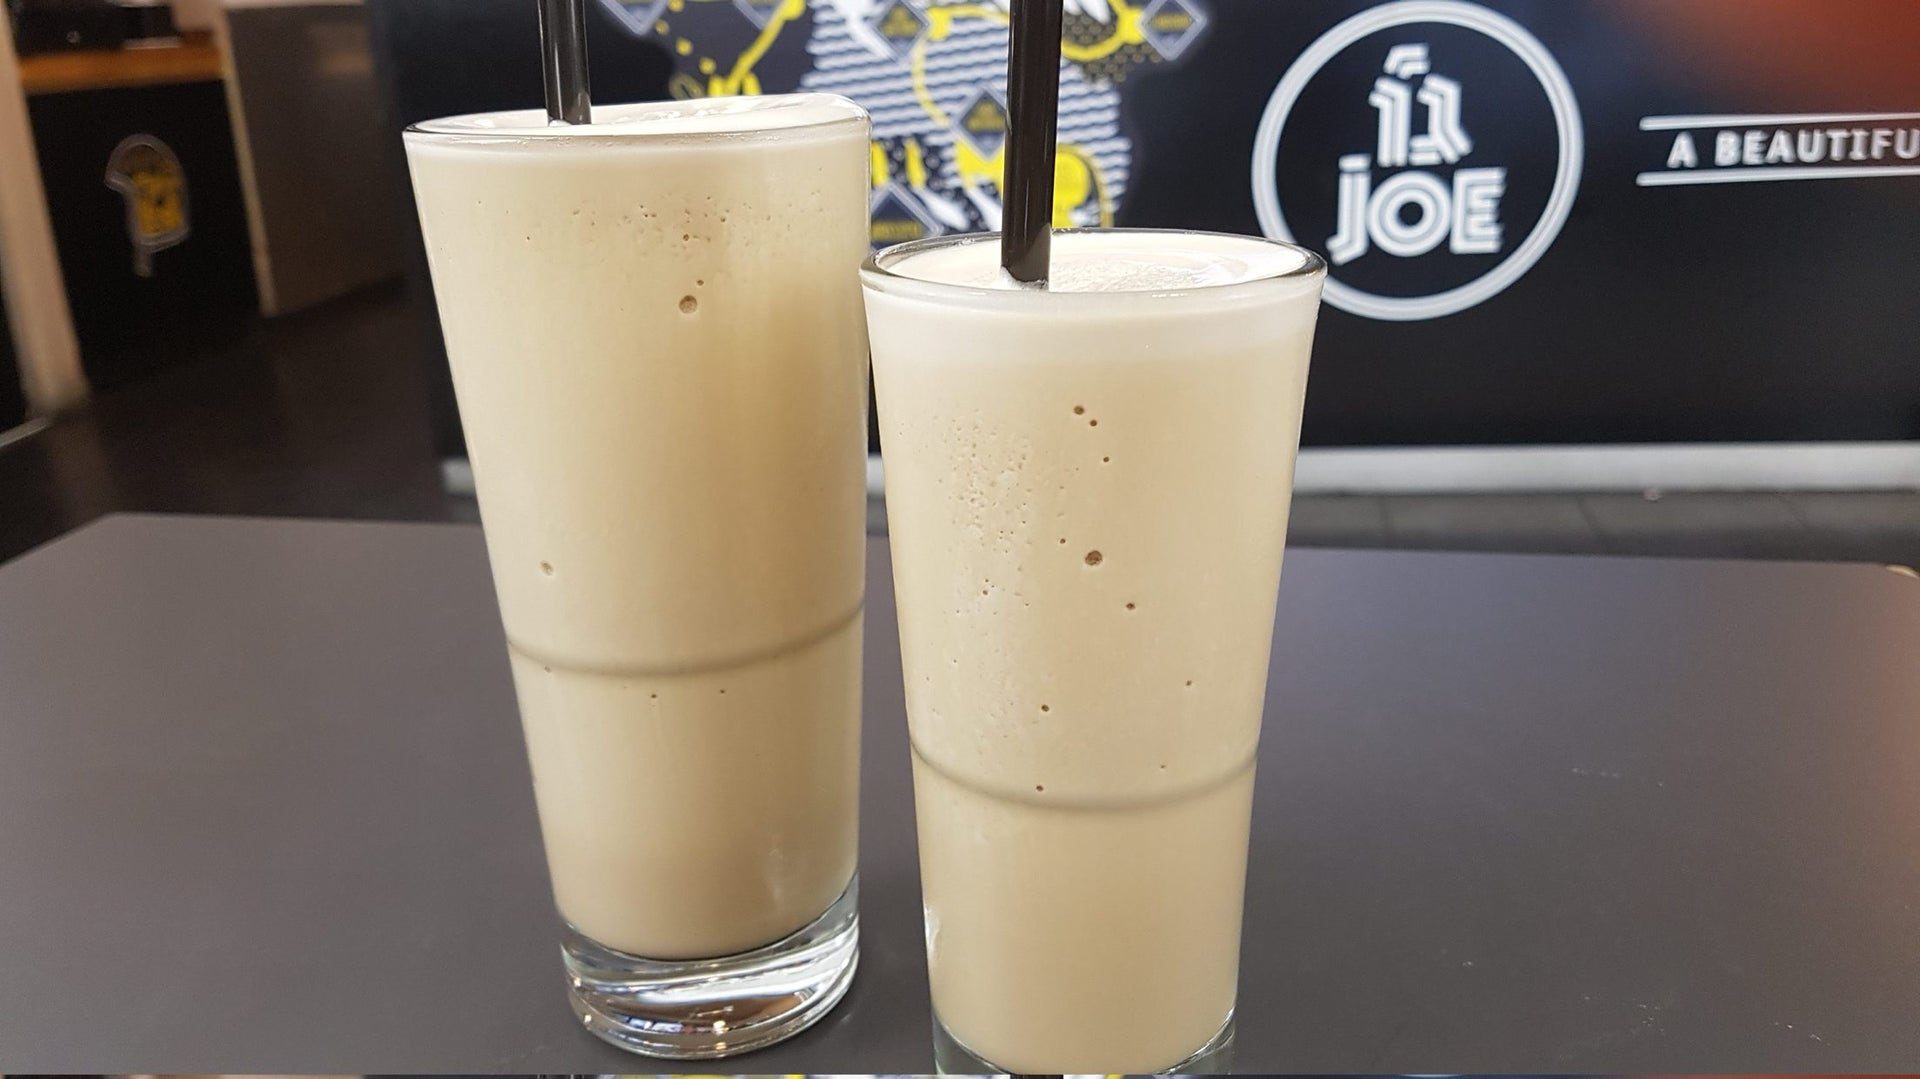 The frozen coffee at Cafe Joe. The diet version is particularly tempting.